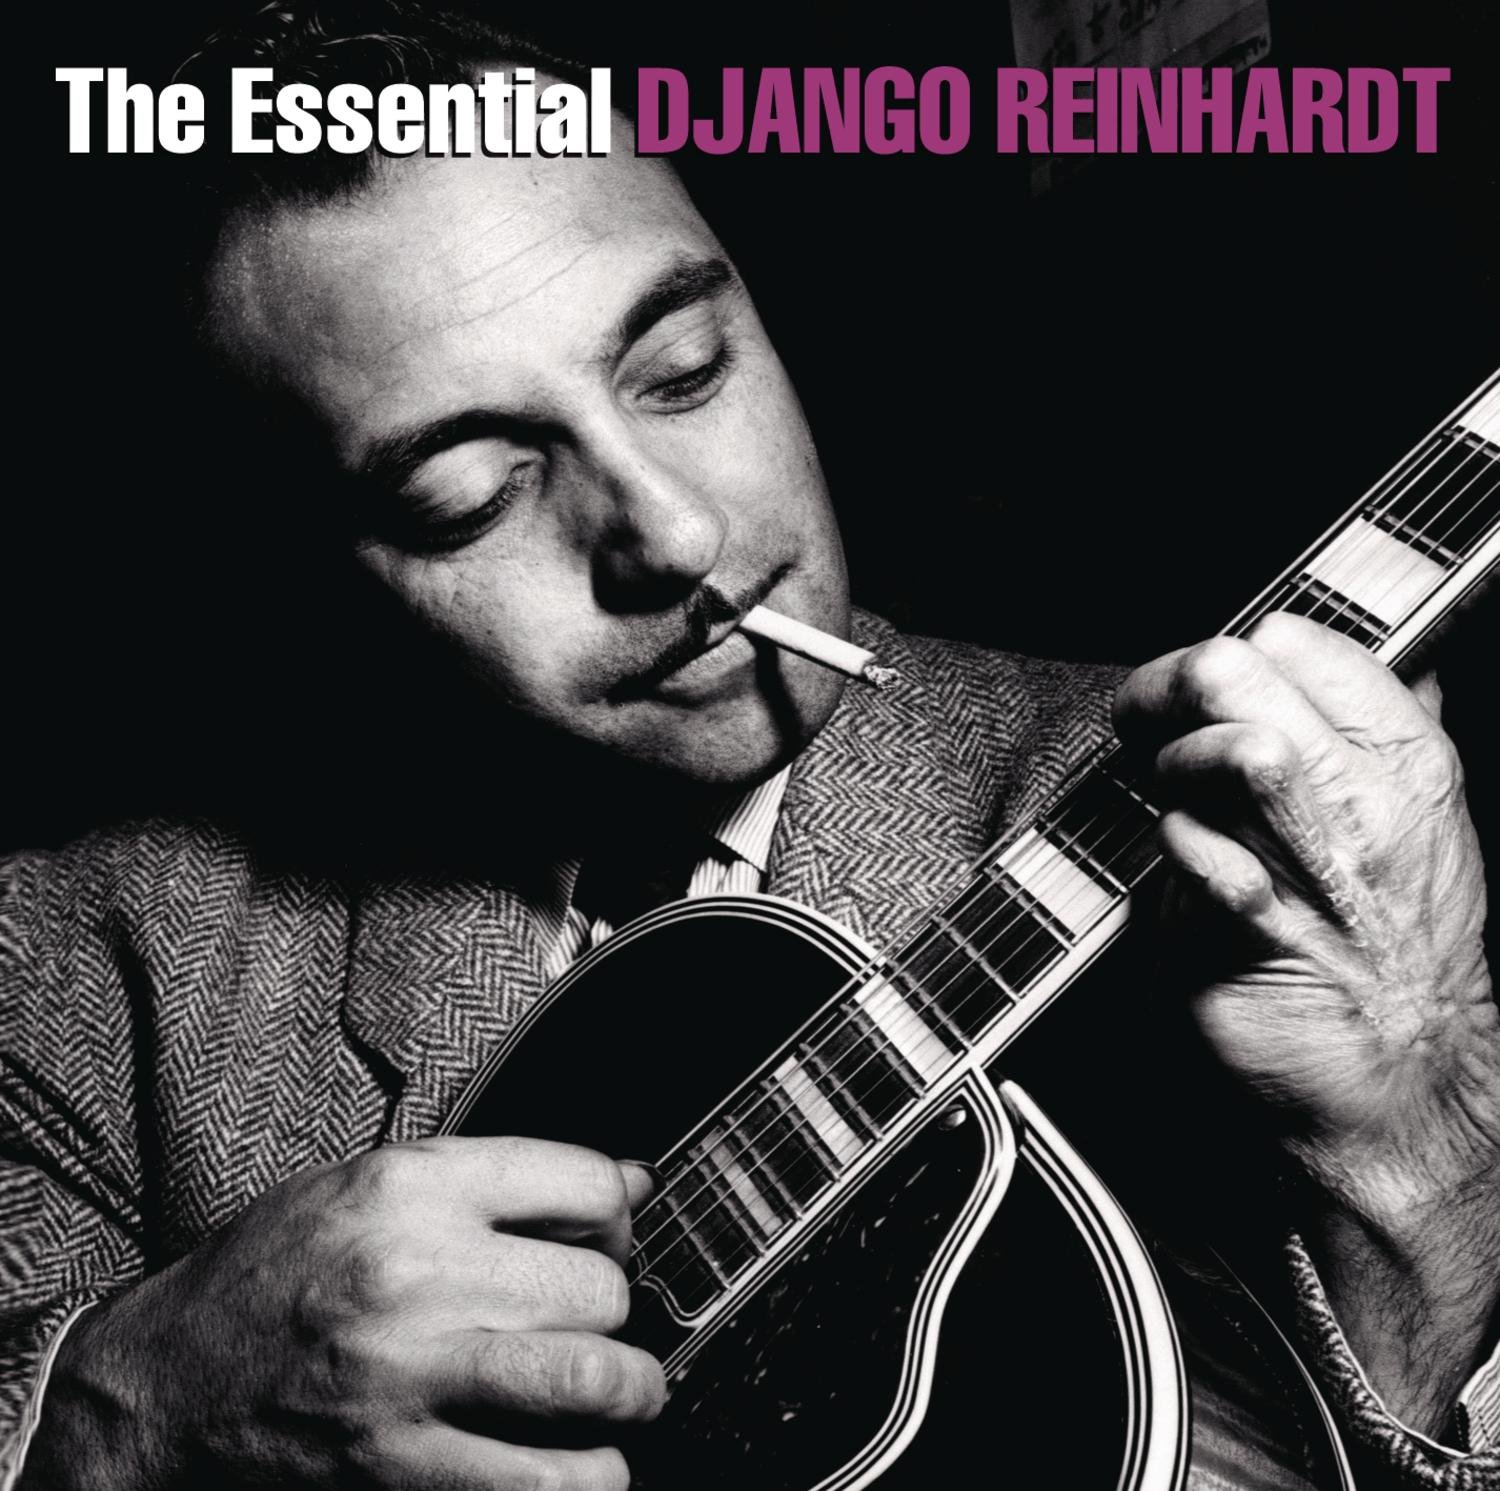 The Essential Django Reinhardt by Sony Legacy